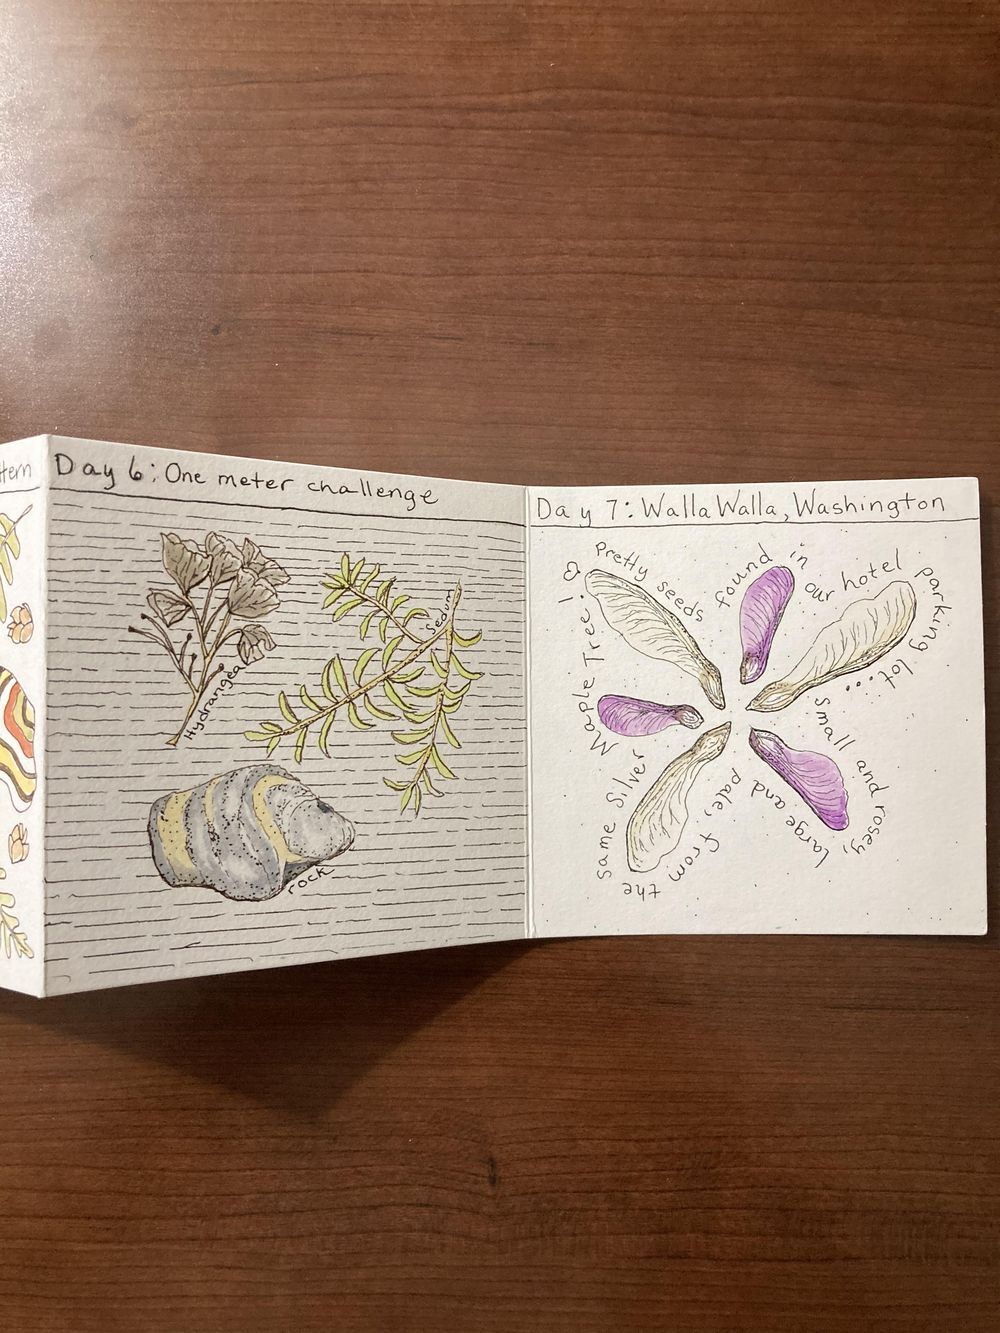 Urban nature journaling - image 3 - student project